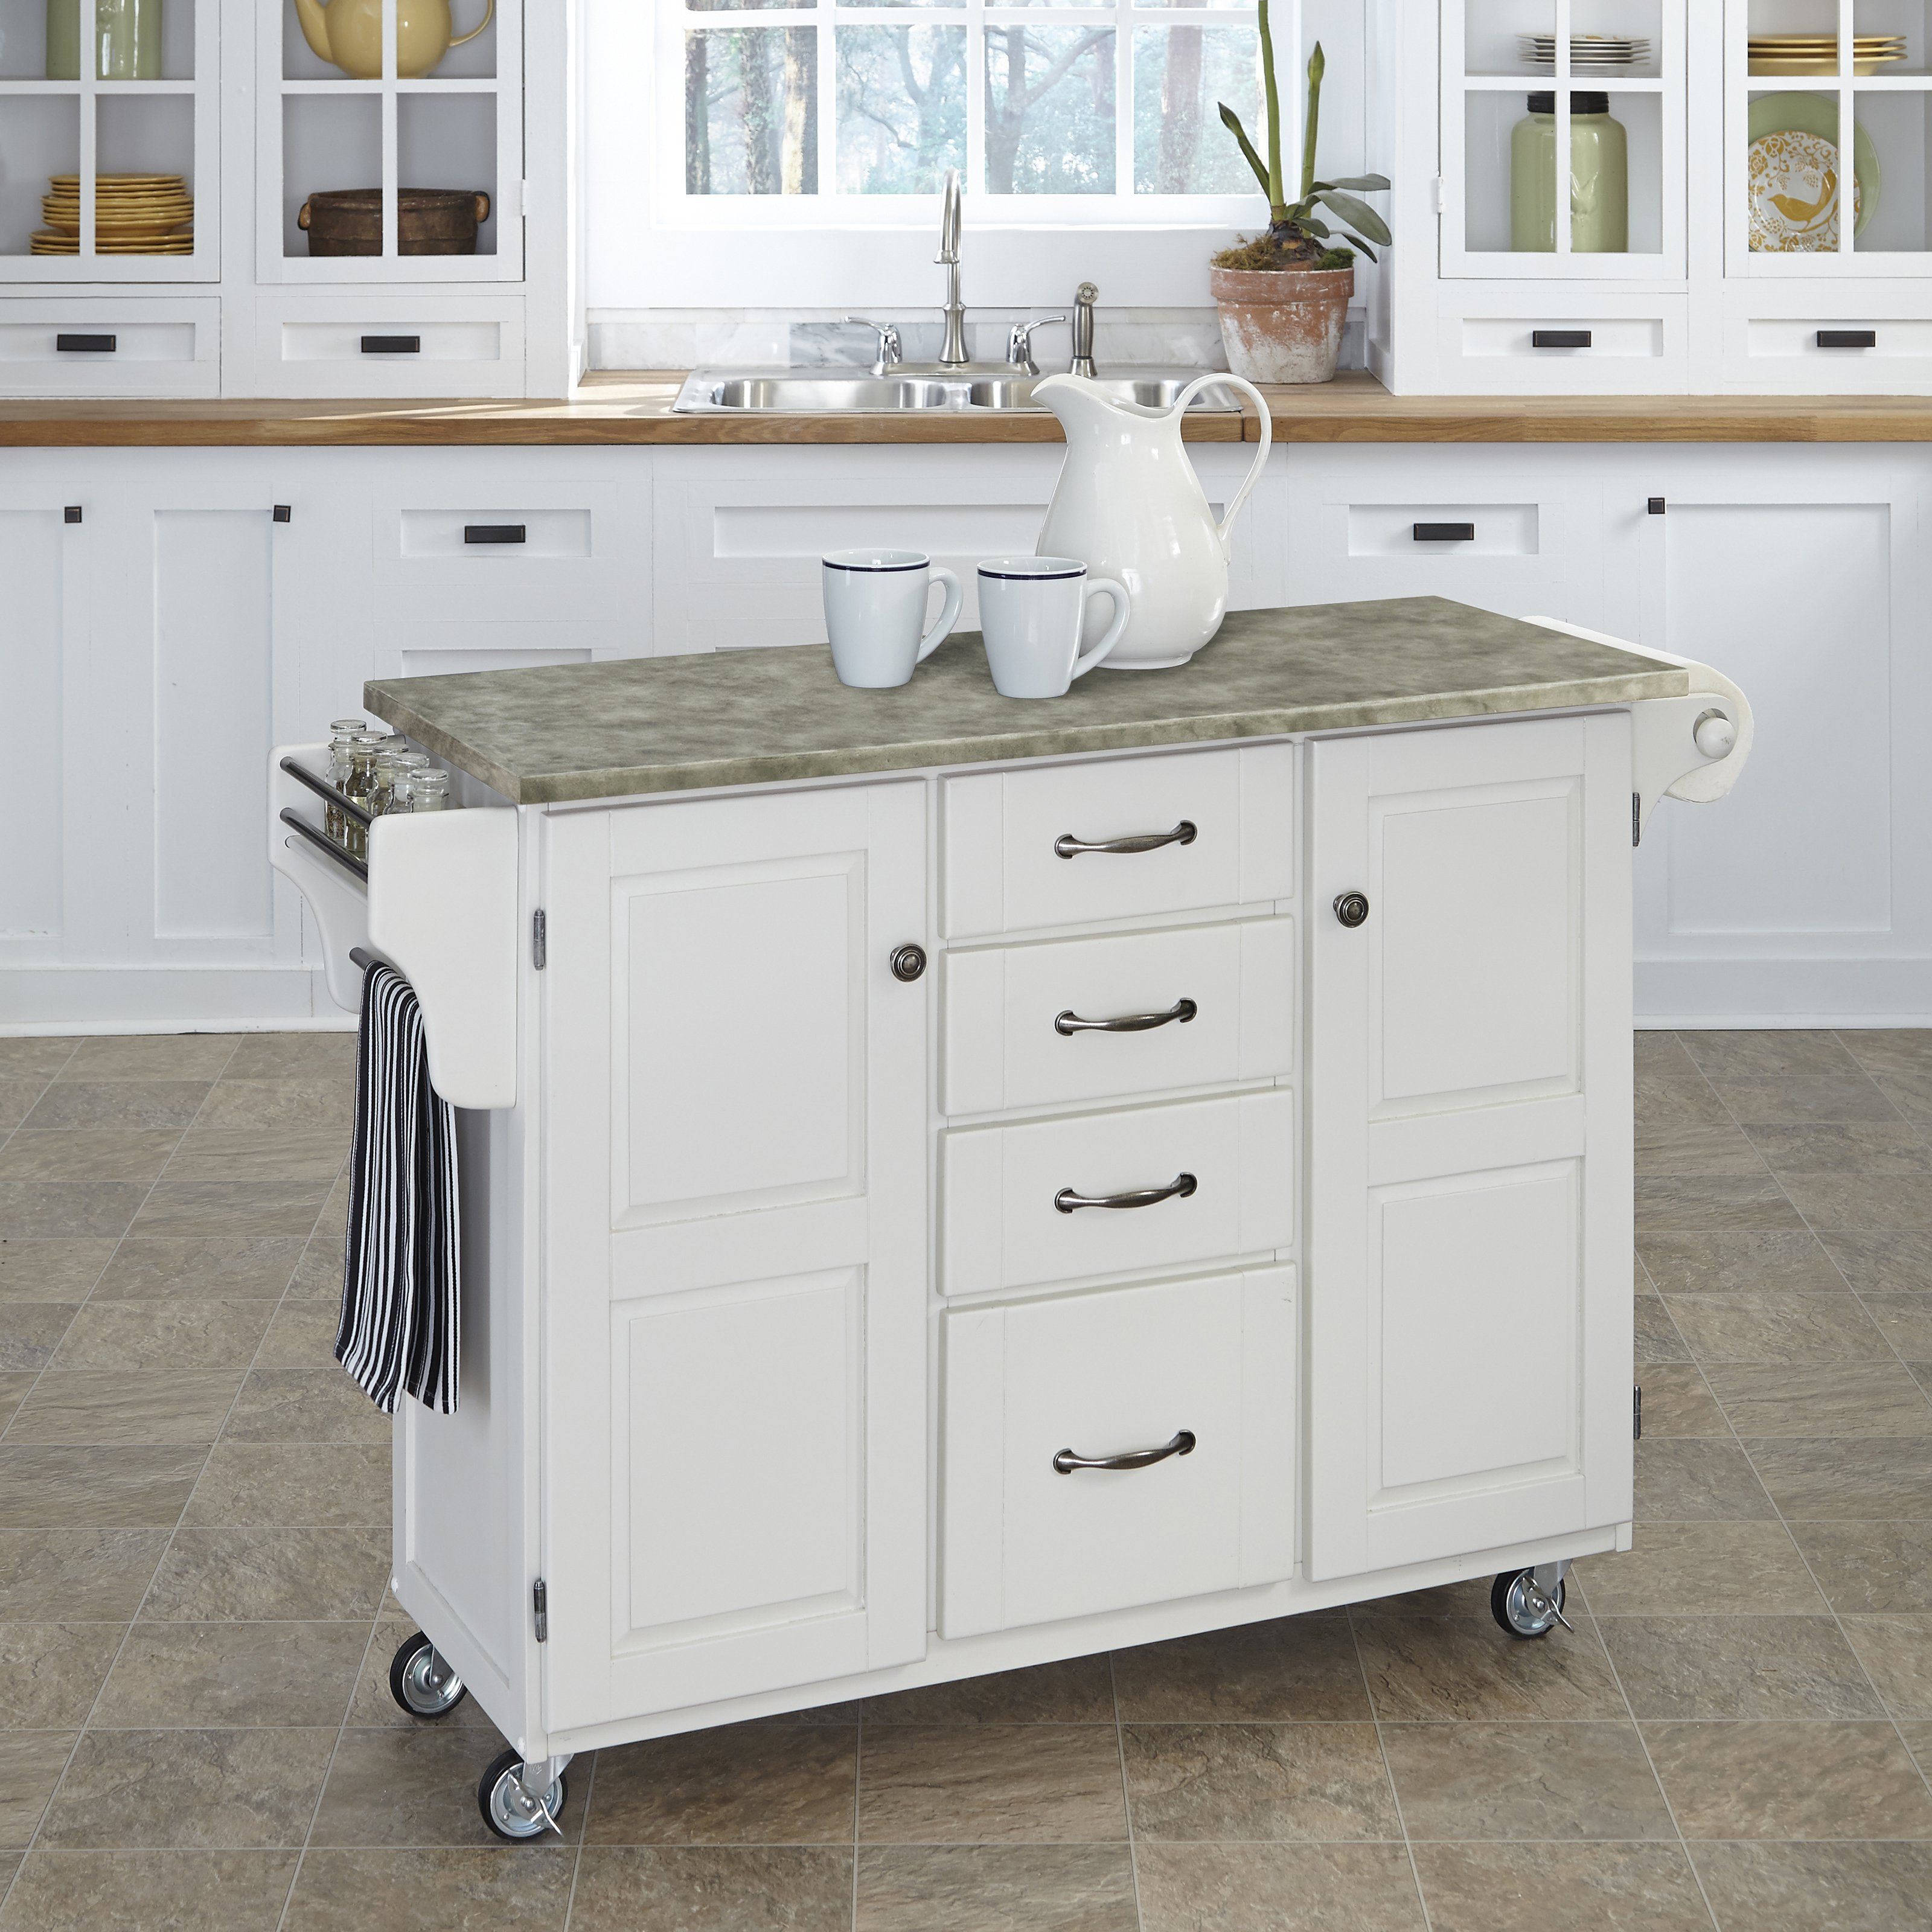 Kitchen island name - Home Styles Create A Cart Kitchen Island With Utility Drawers Choose From Several